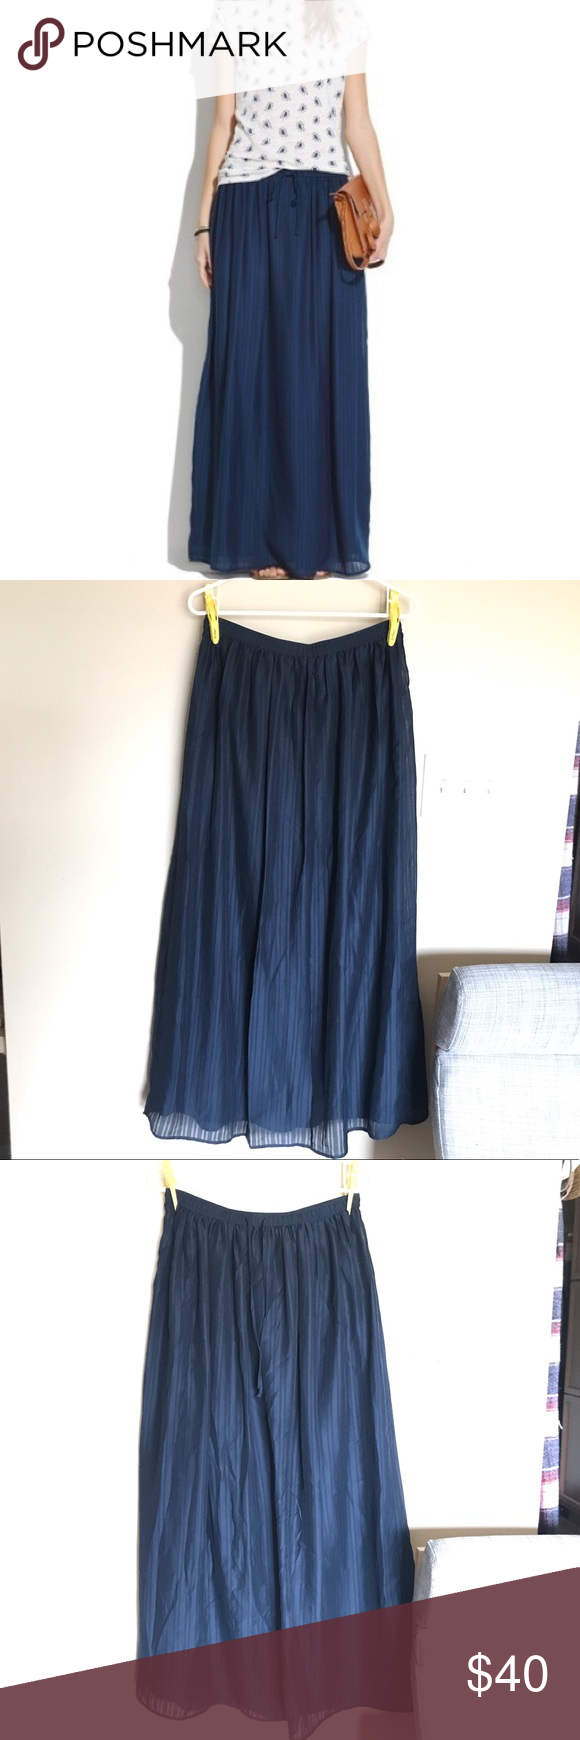 a0b67607d Madewell | skyward skirt Navy blue maxi skirt with waist tie and piped  detail. Perfect